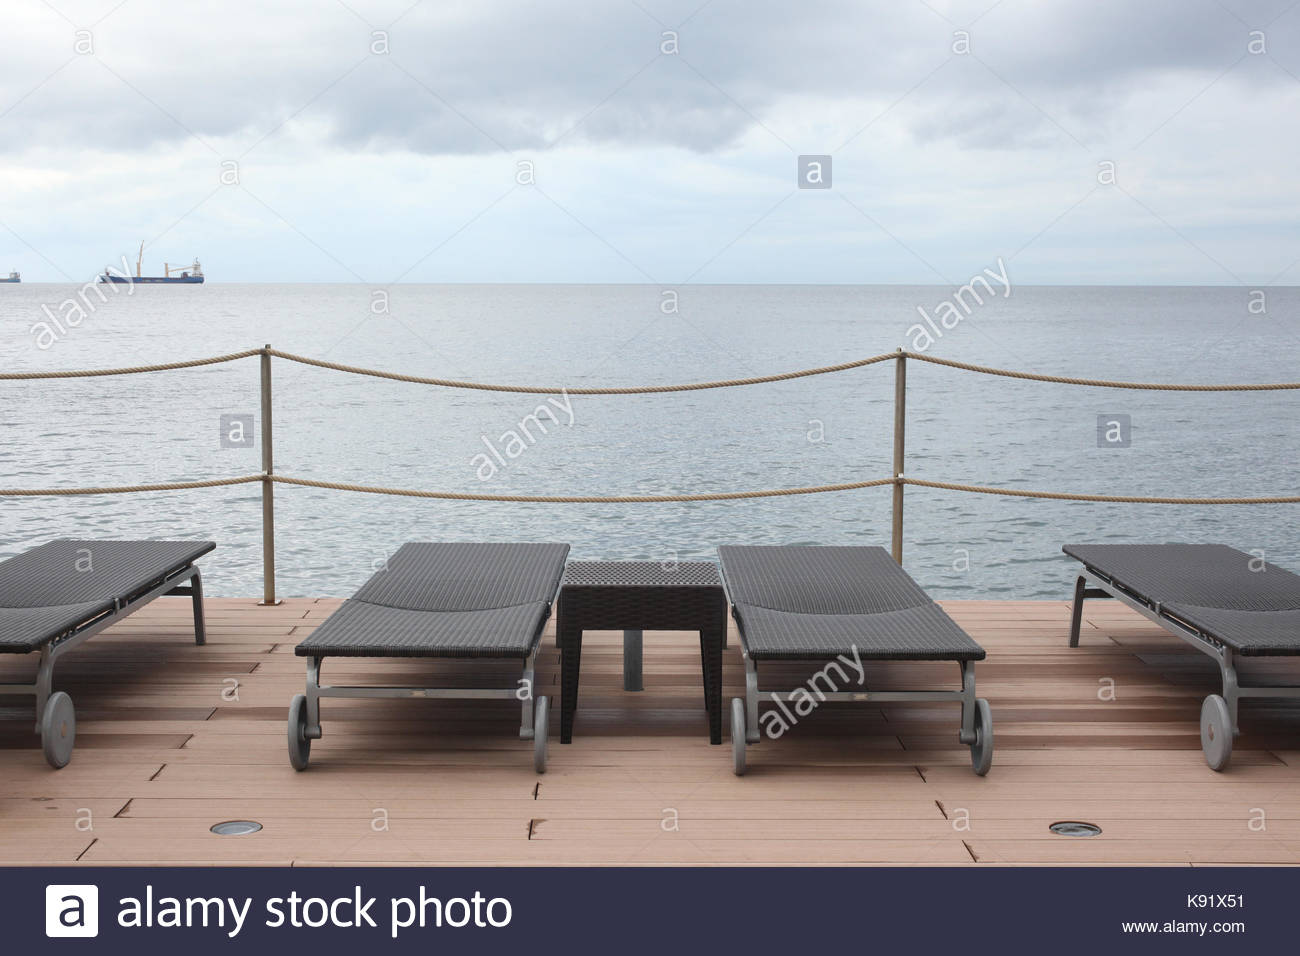 sunbeds on afront sea  wooden deck in an overcast day - Stock Image